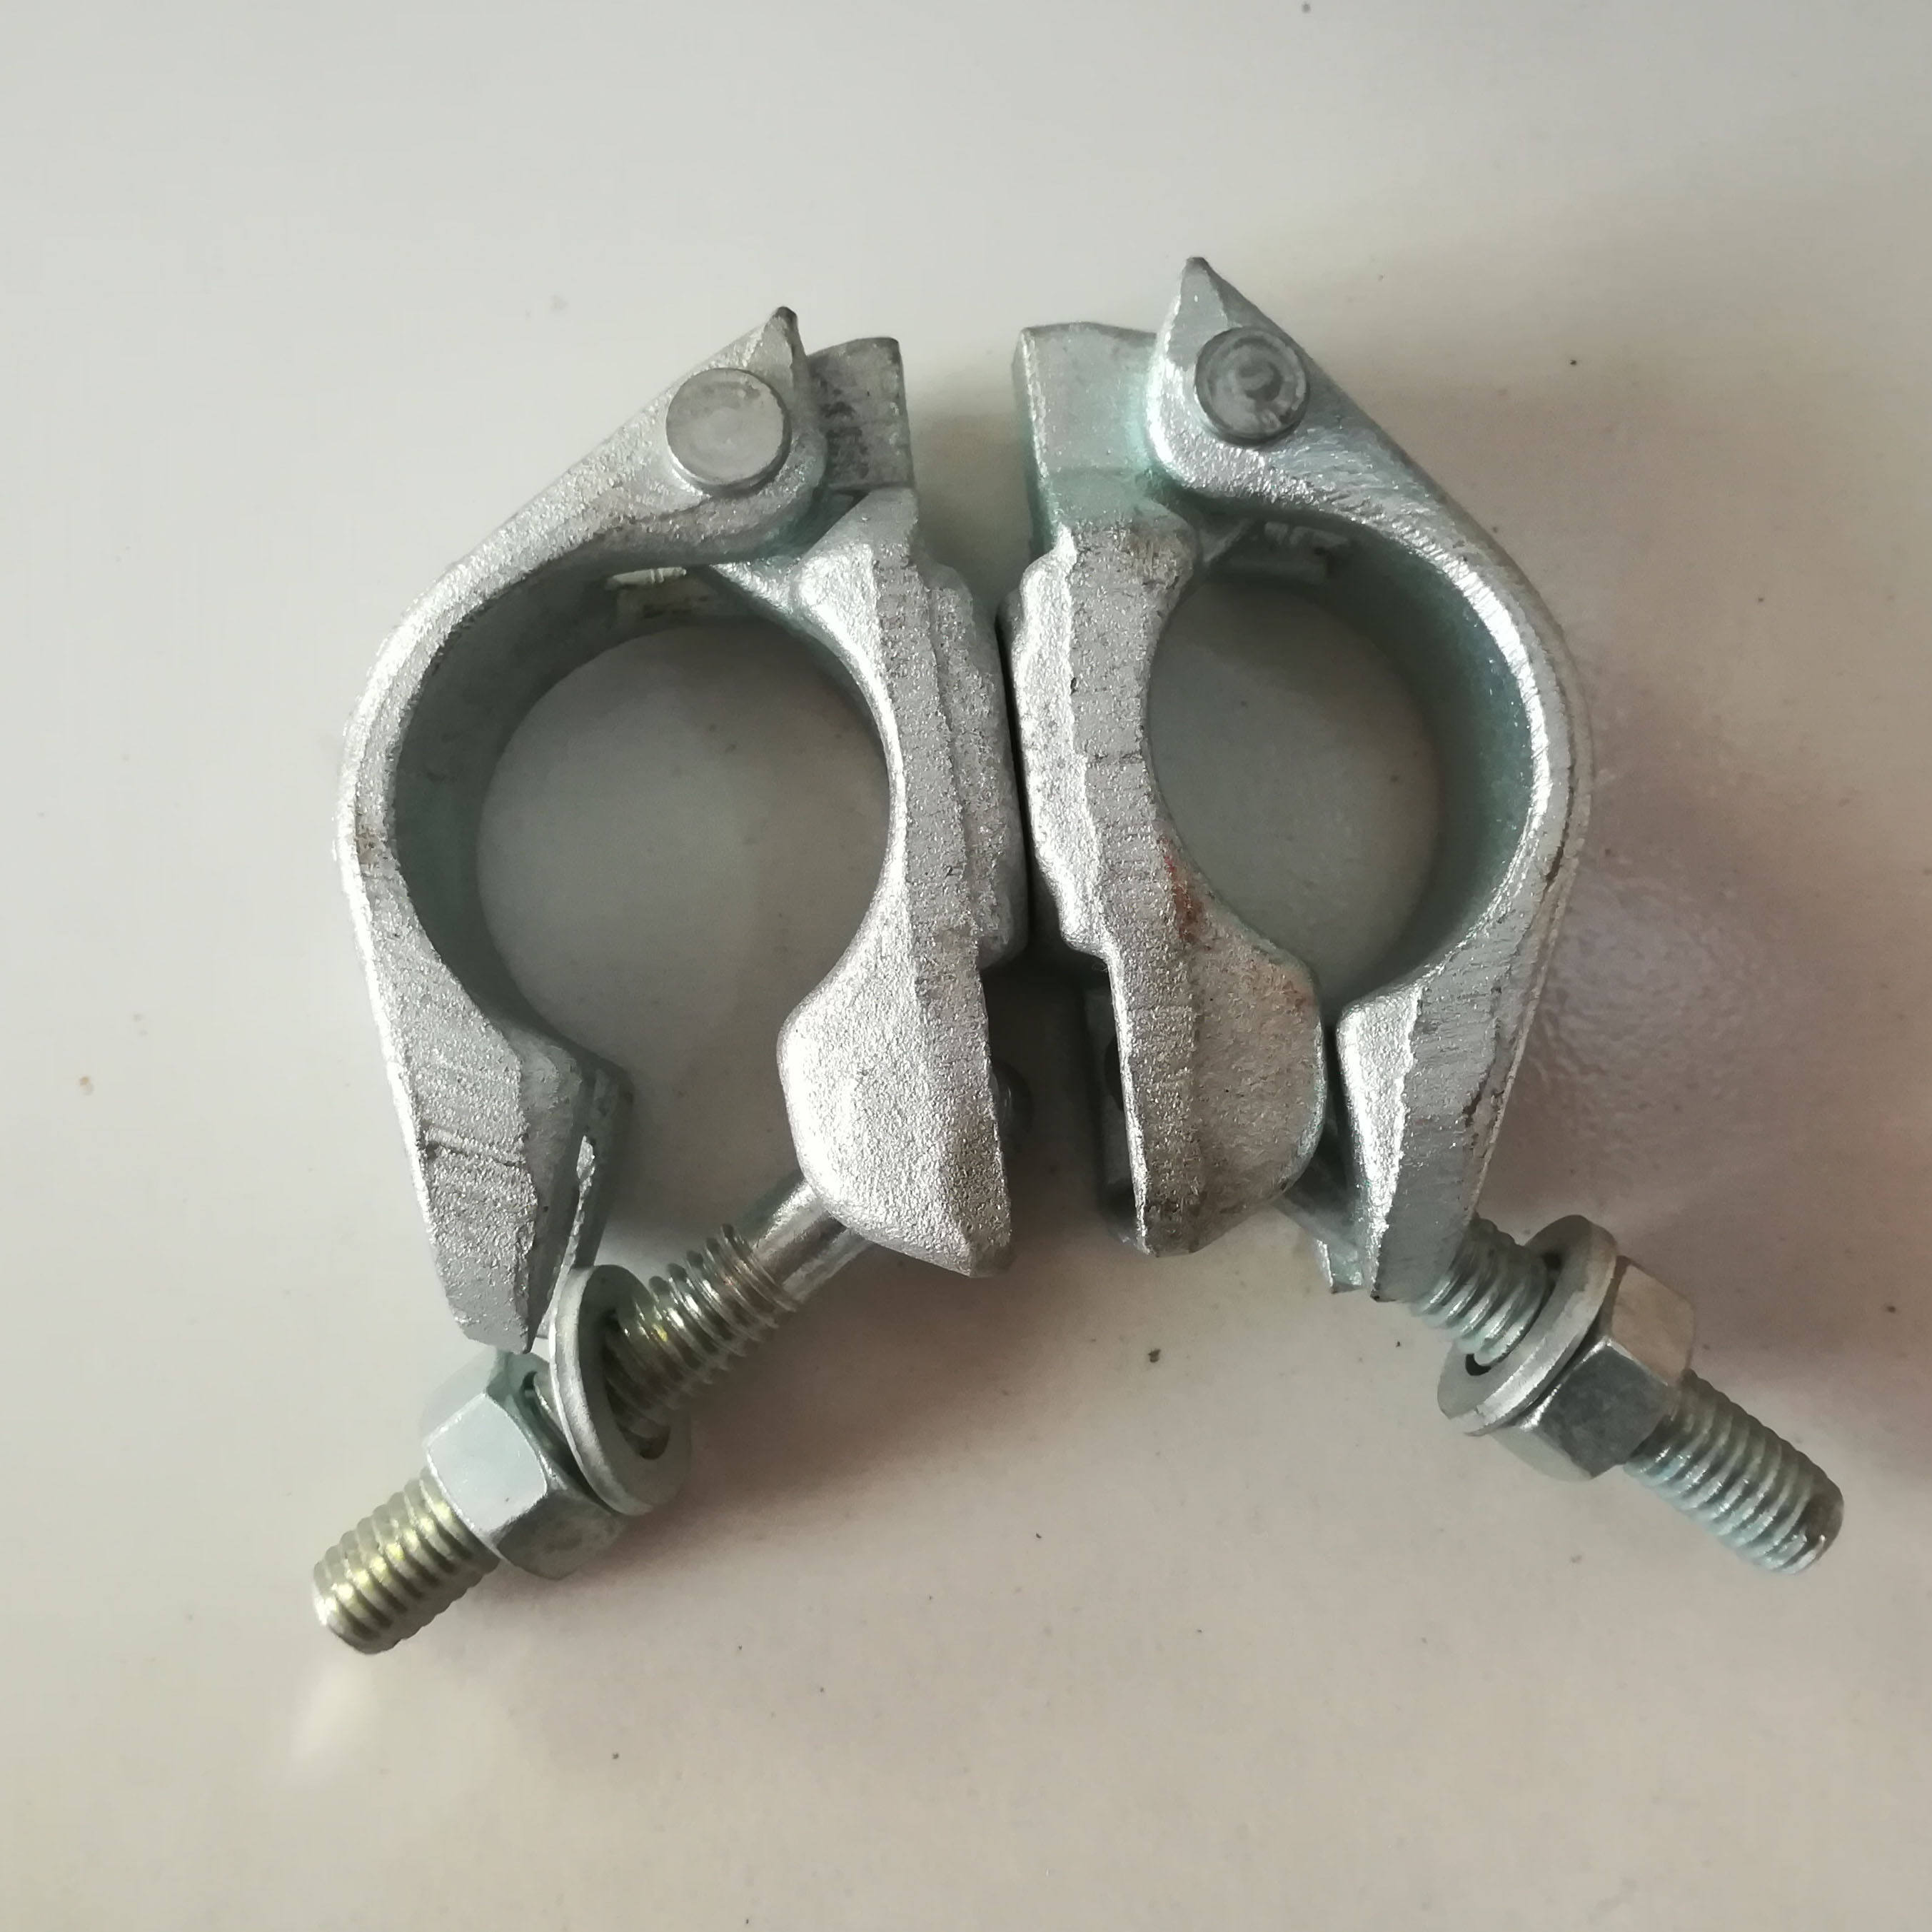 EN74 BS1139 STANDARD carbon steel scaffolding forged swivel clamp